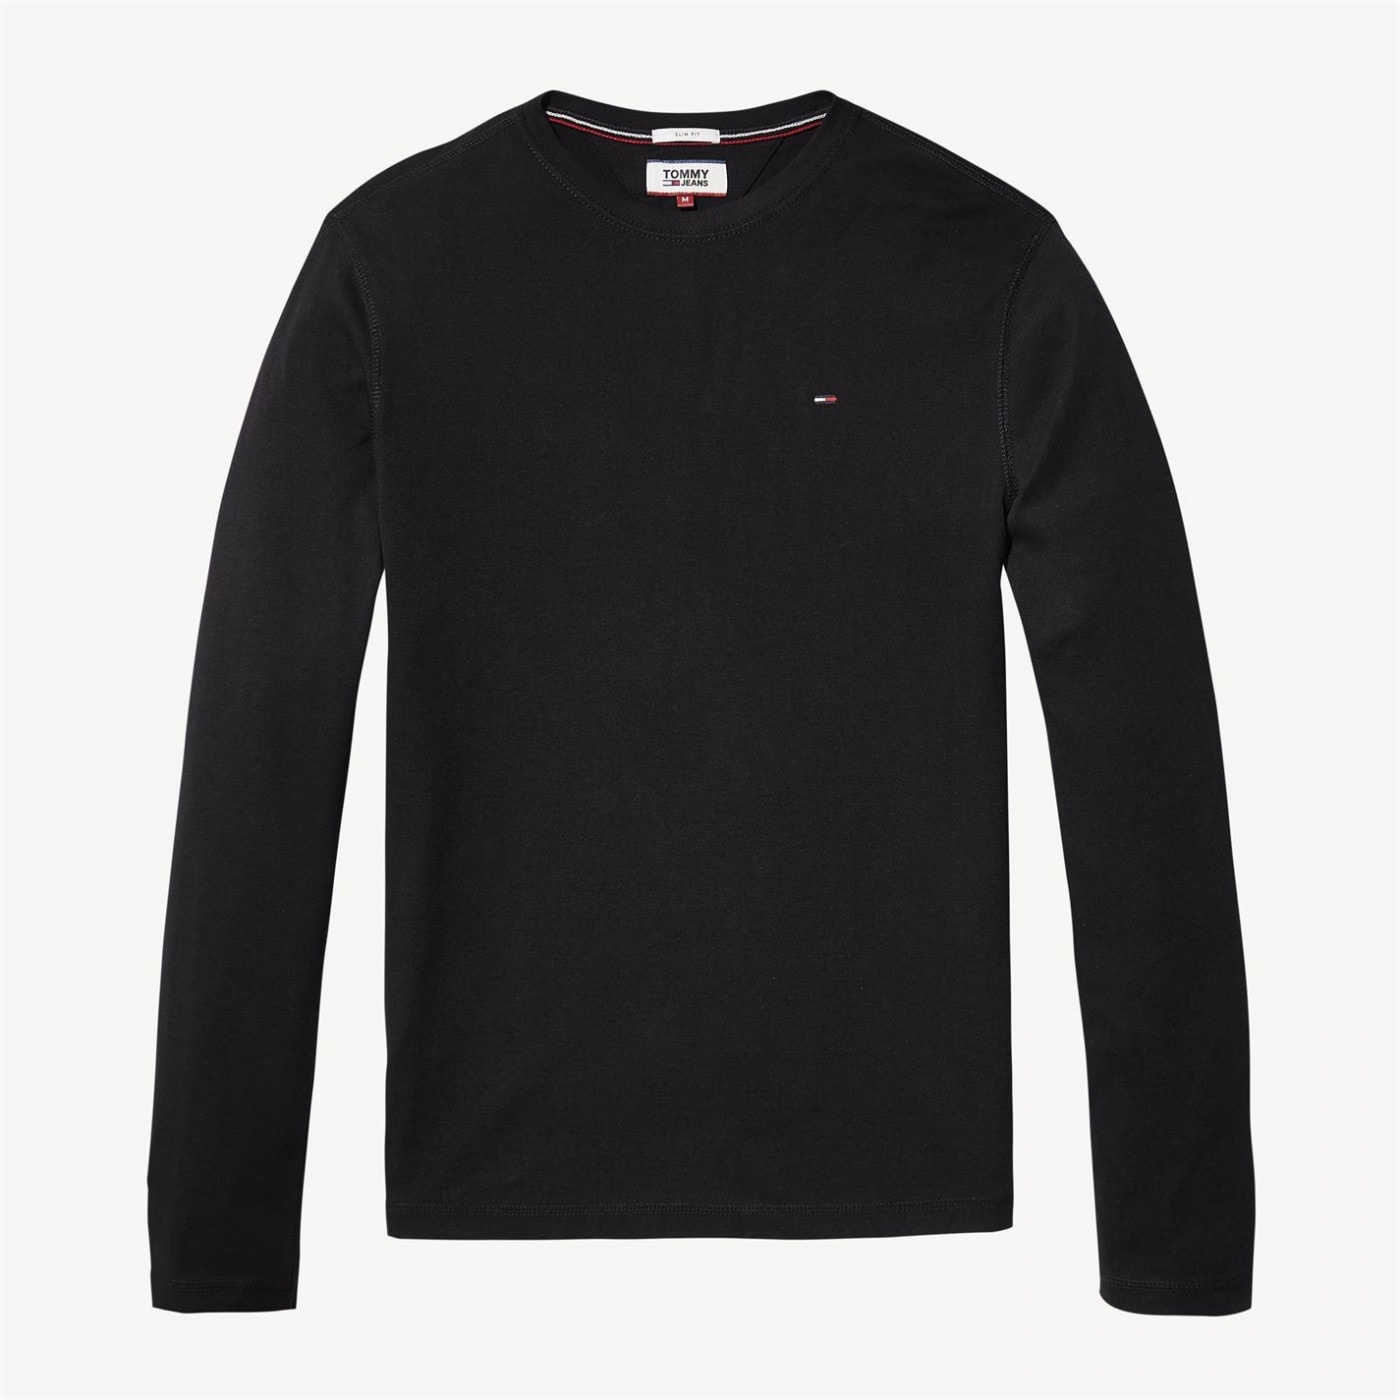 Tommy Jeans Original Long Sleeve T Shirt